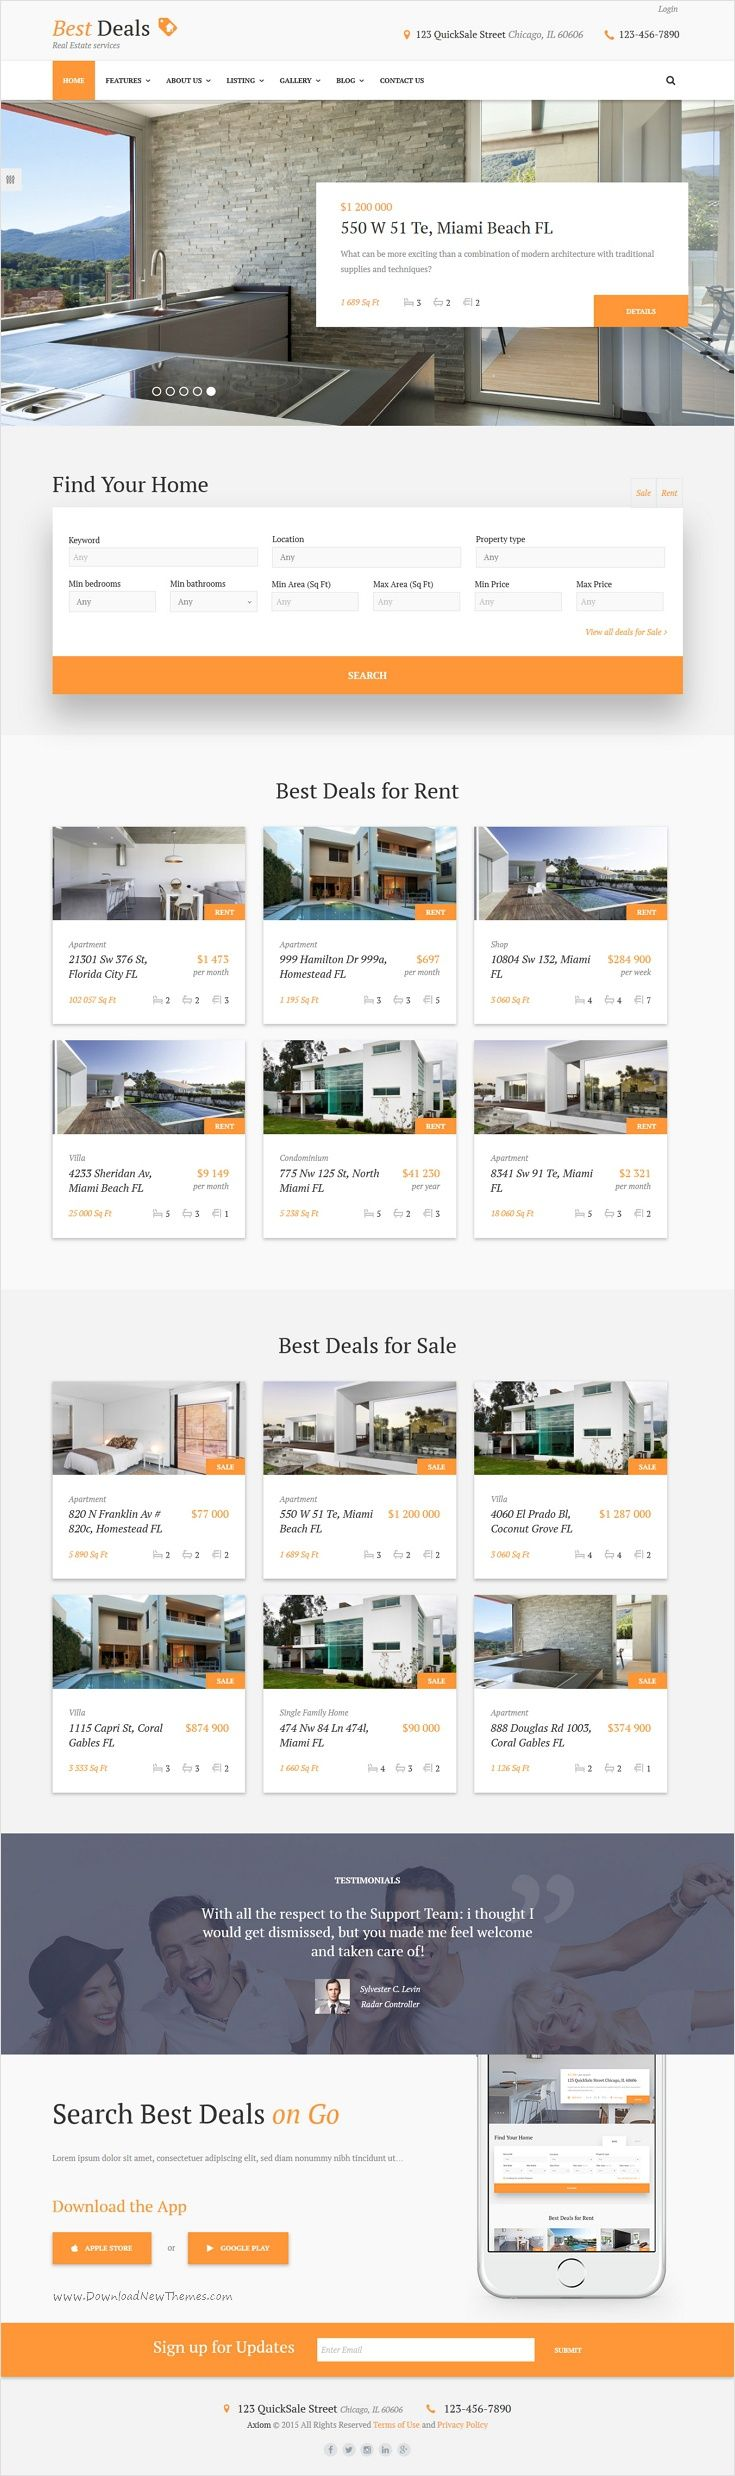 Best deals property sales rental site template